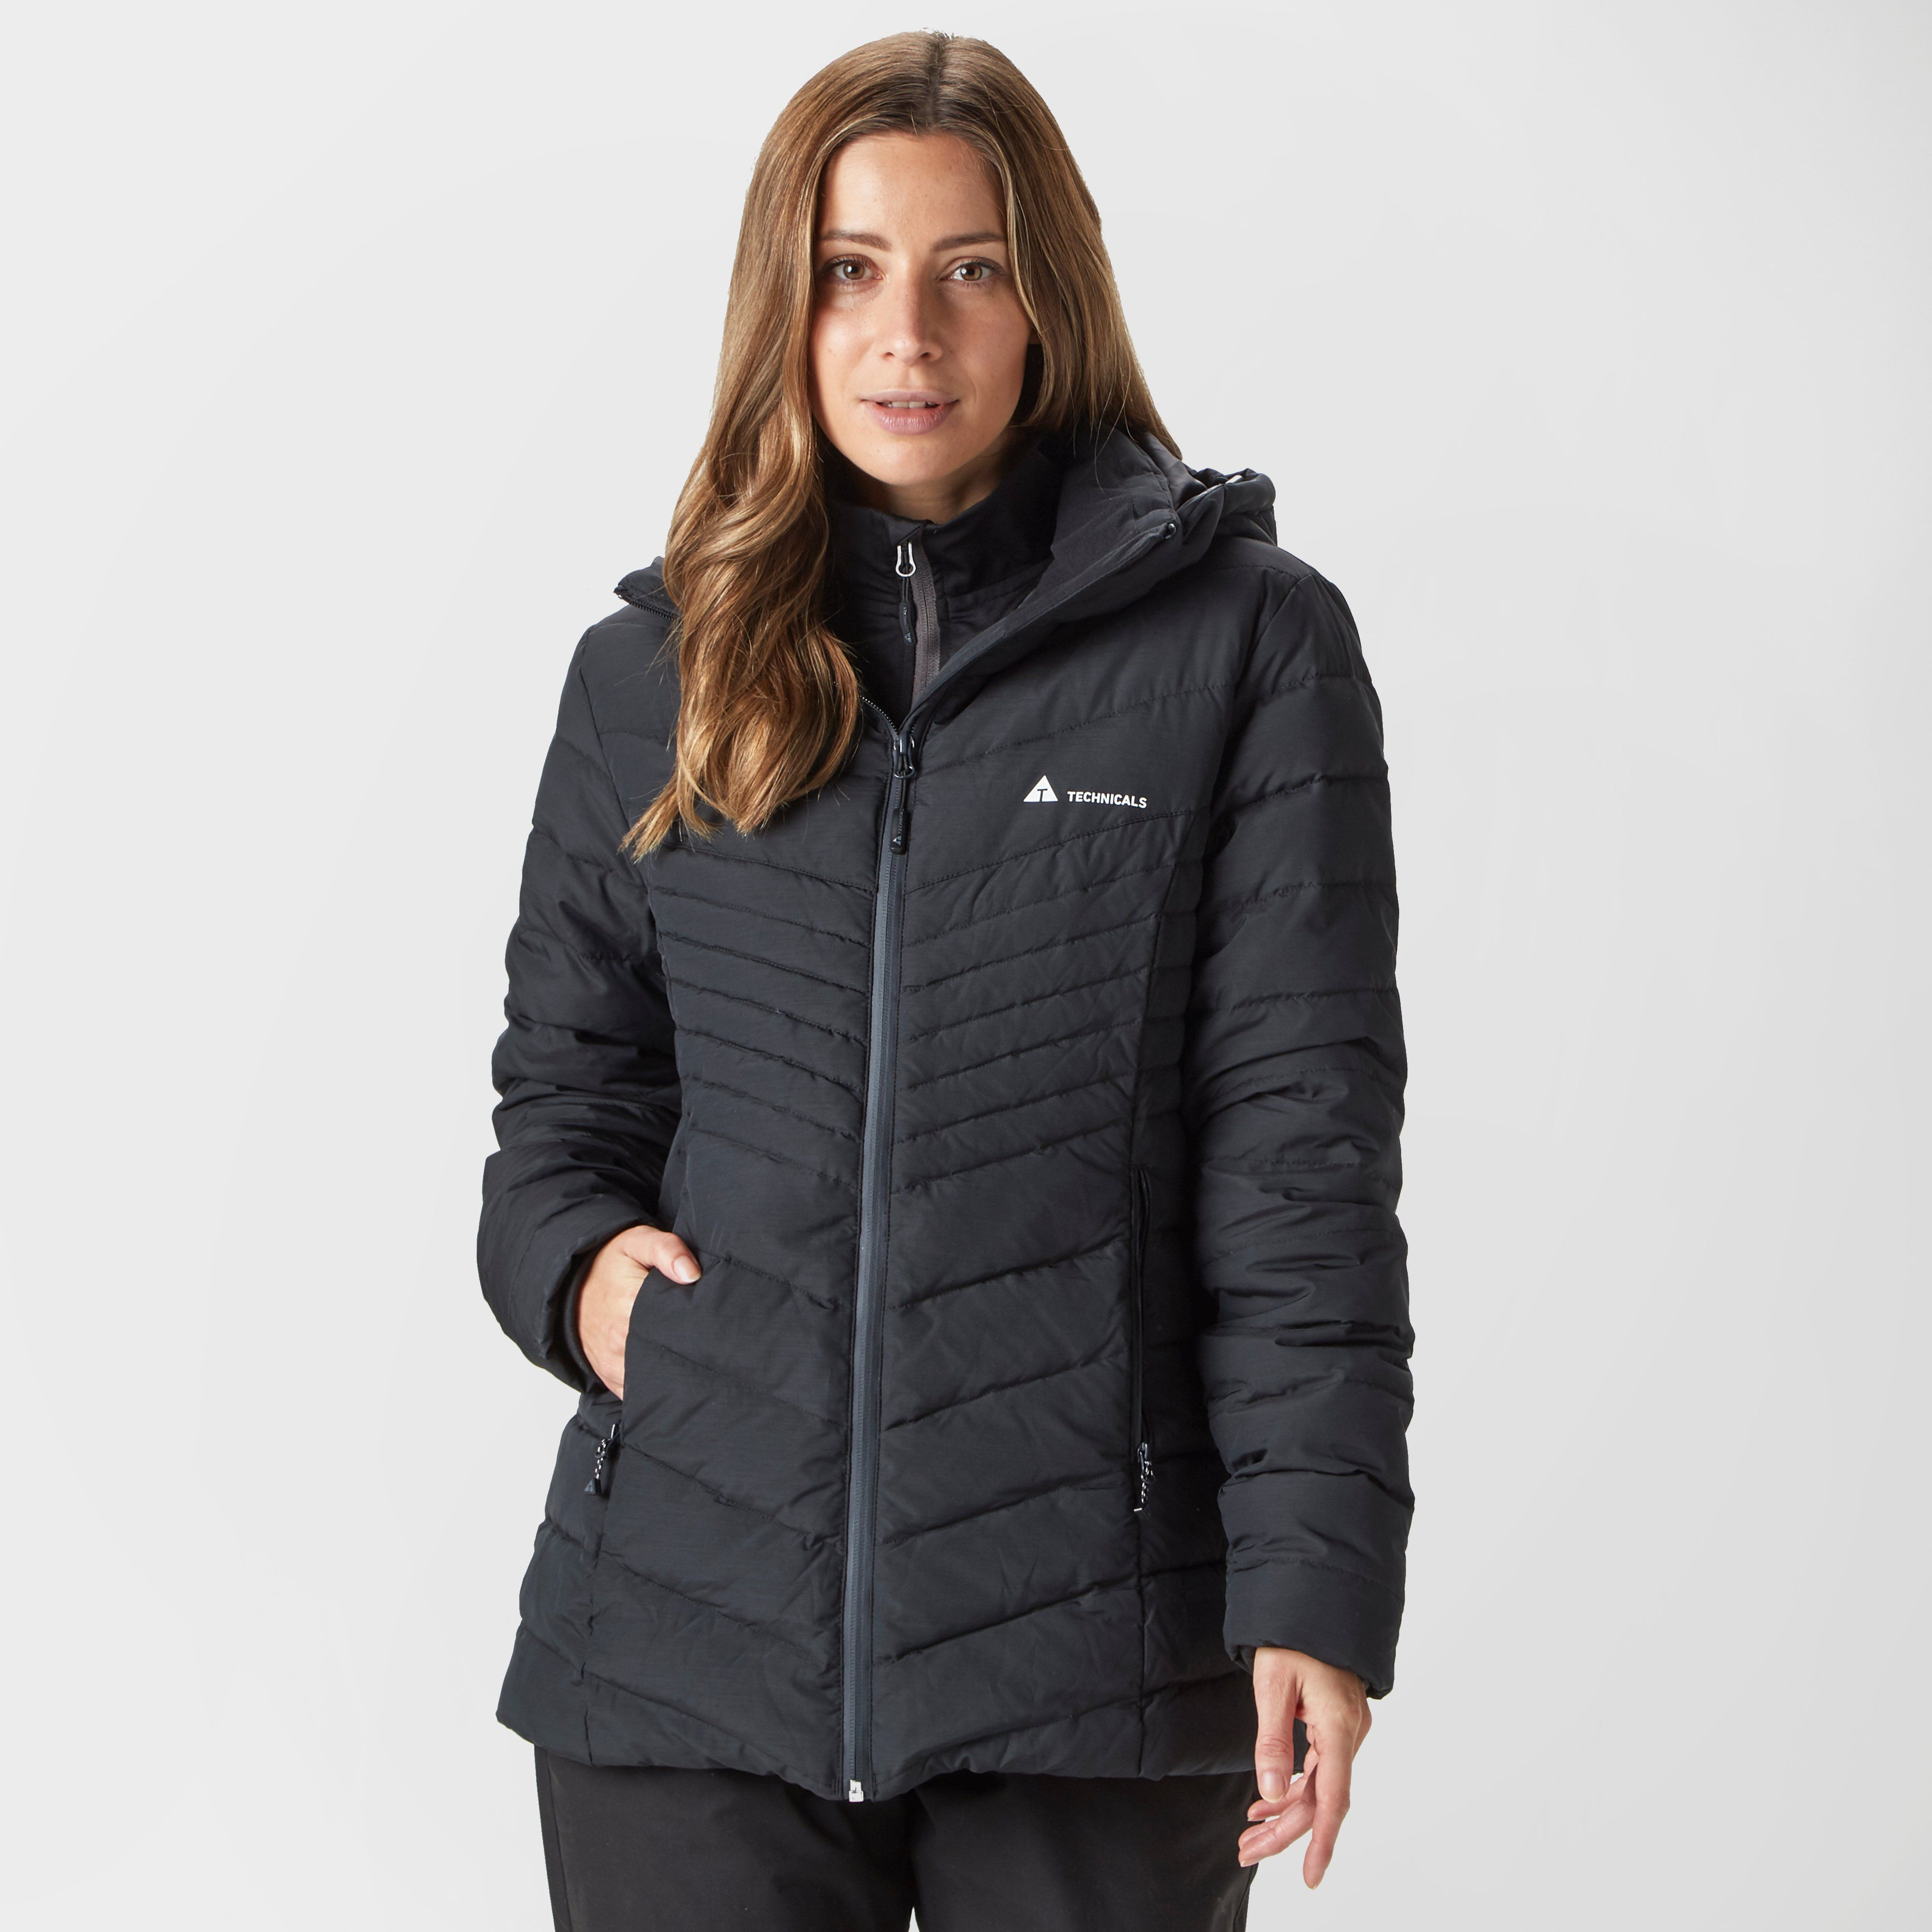 TECHNICALS Women's Chill Down Jacket